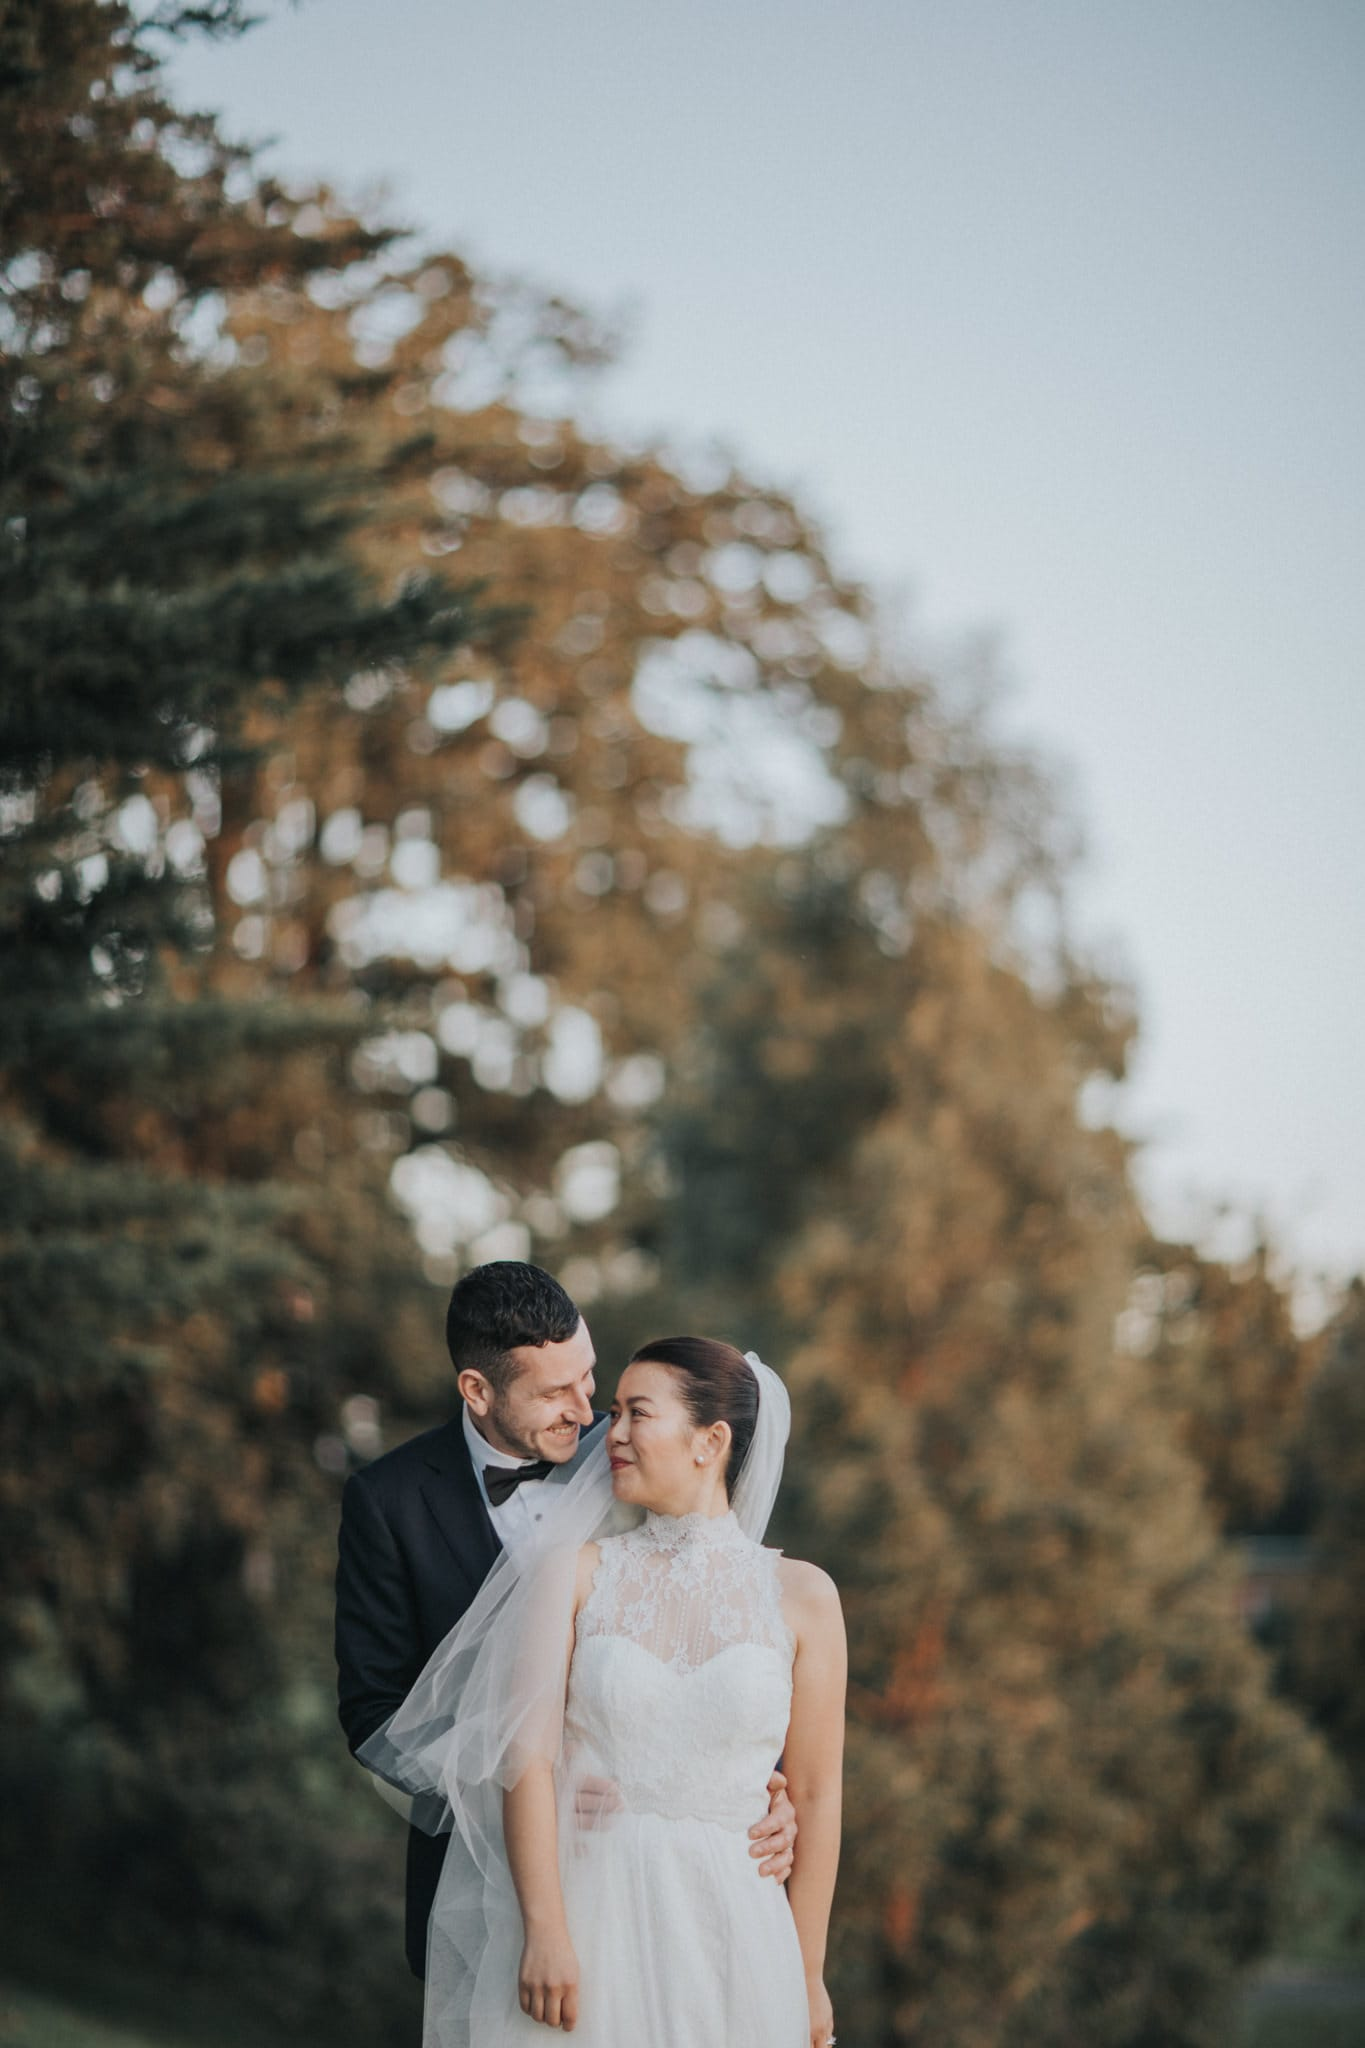 Wedding photos in Melbourne - bride and groom get married in Hawthorn at Leonda by the Yarra - Capturing a stylish wedding